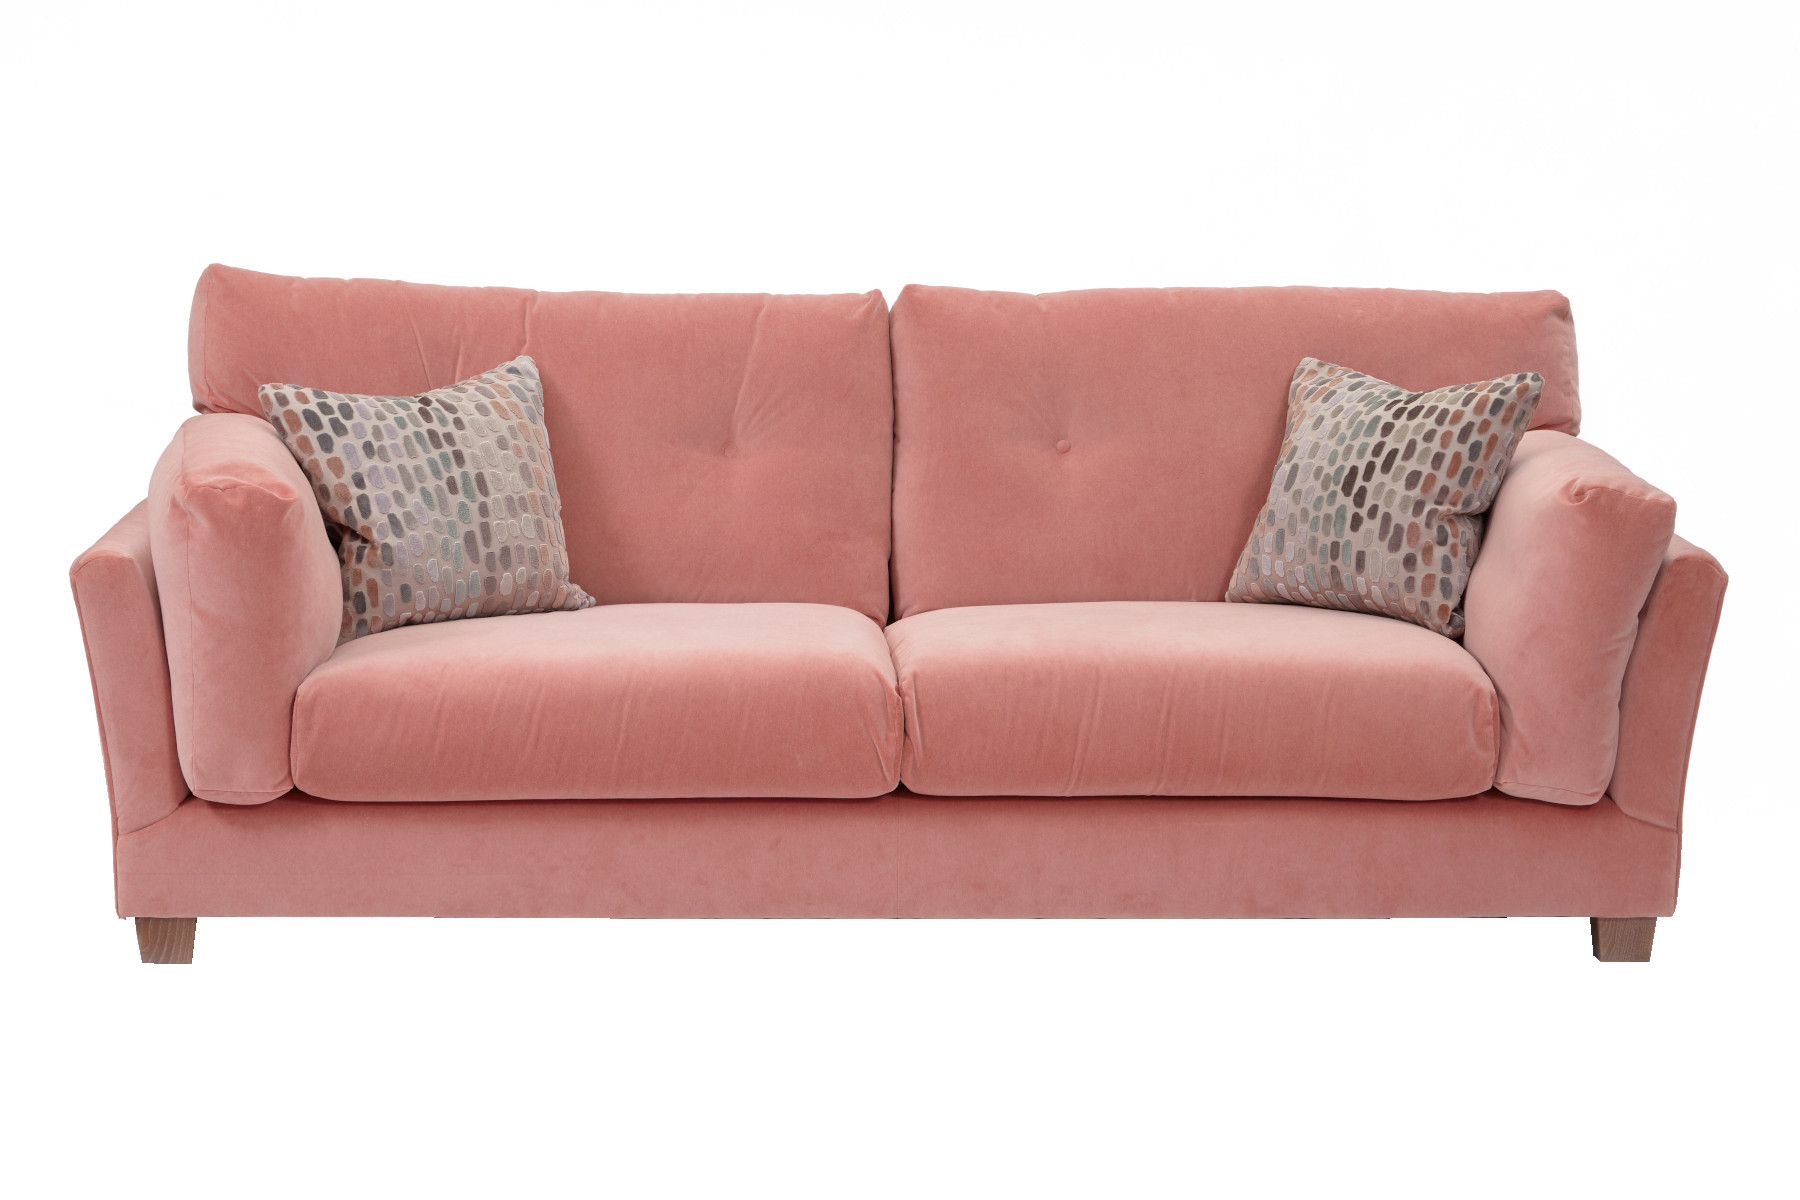 Camille Extra Large Sofa